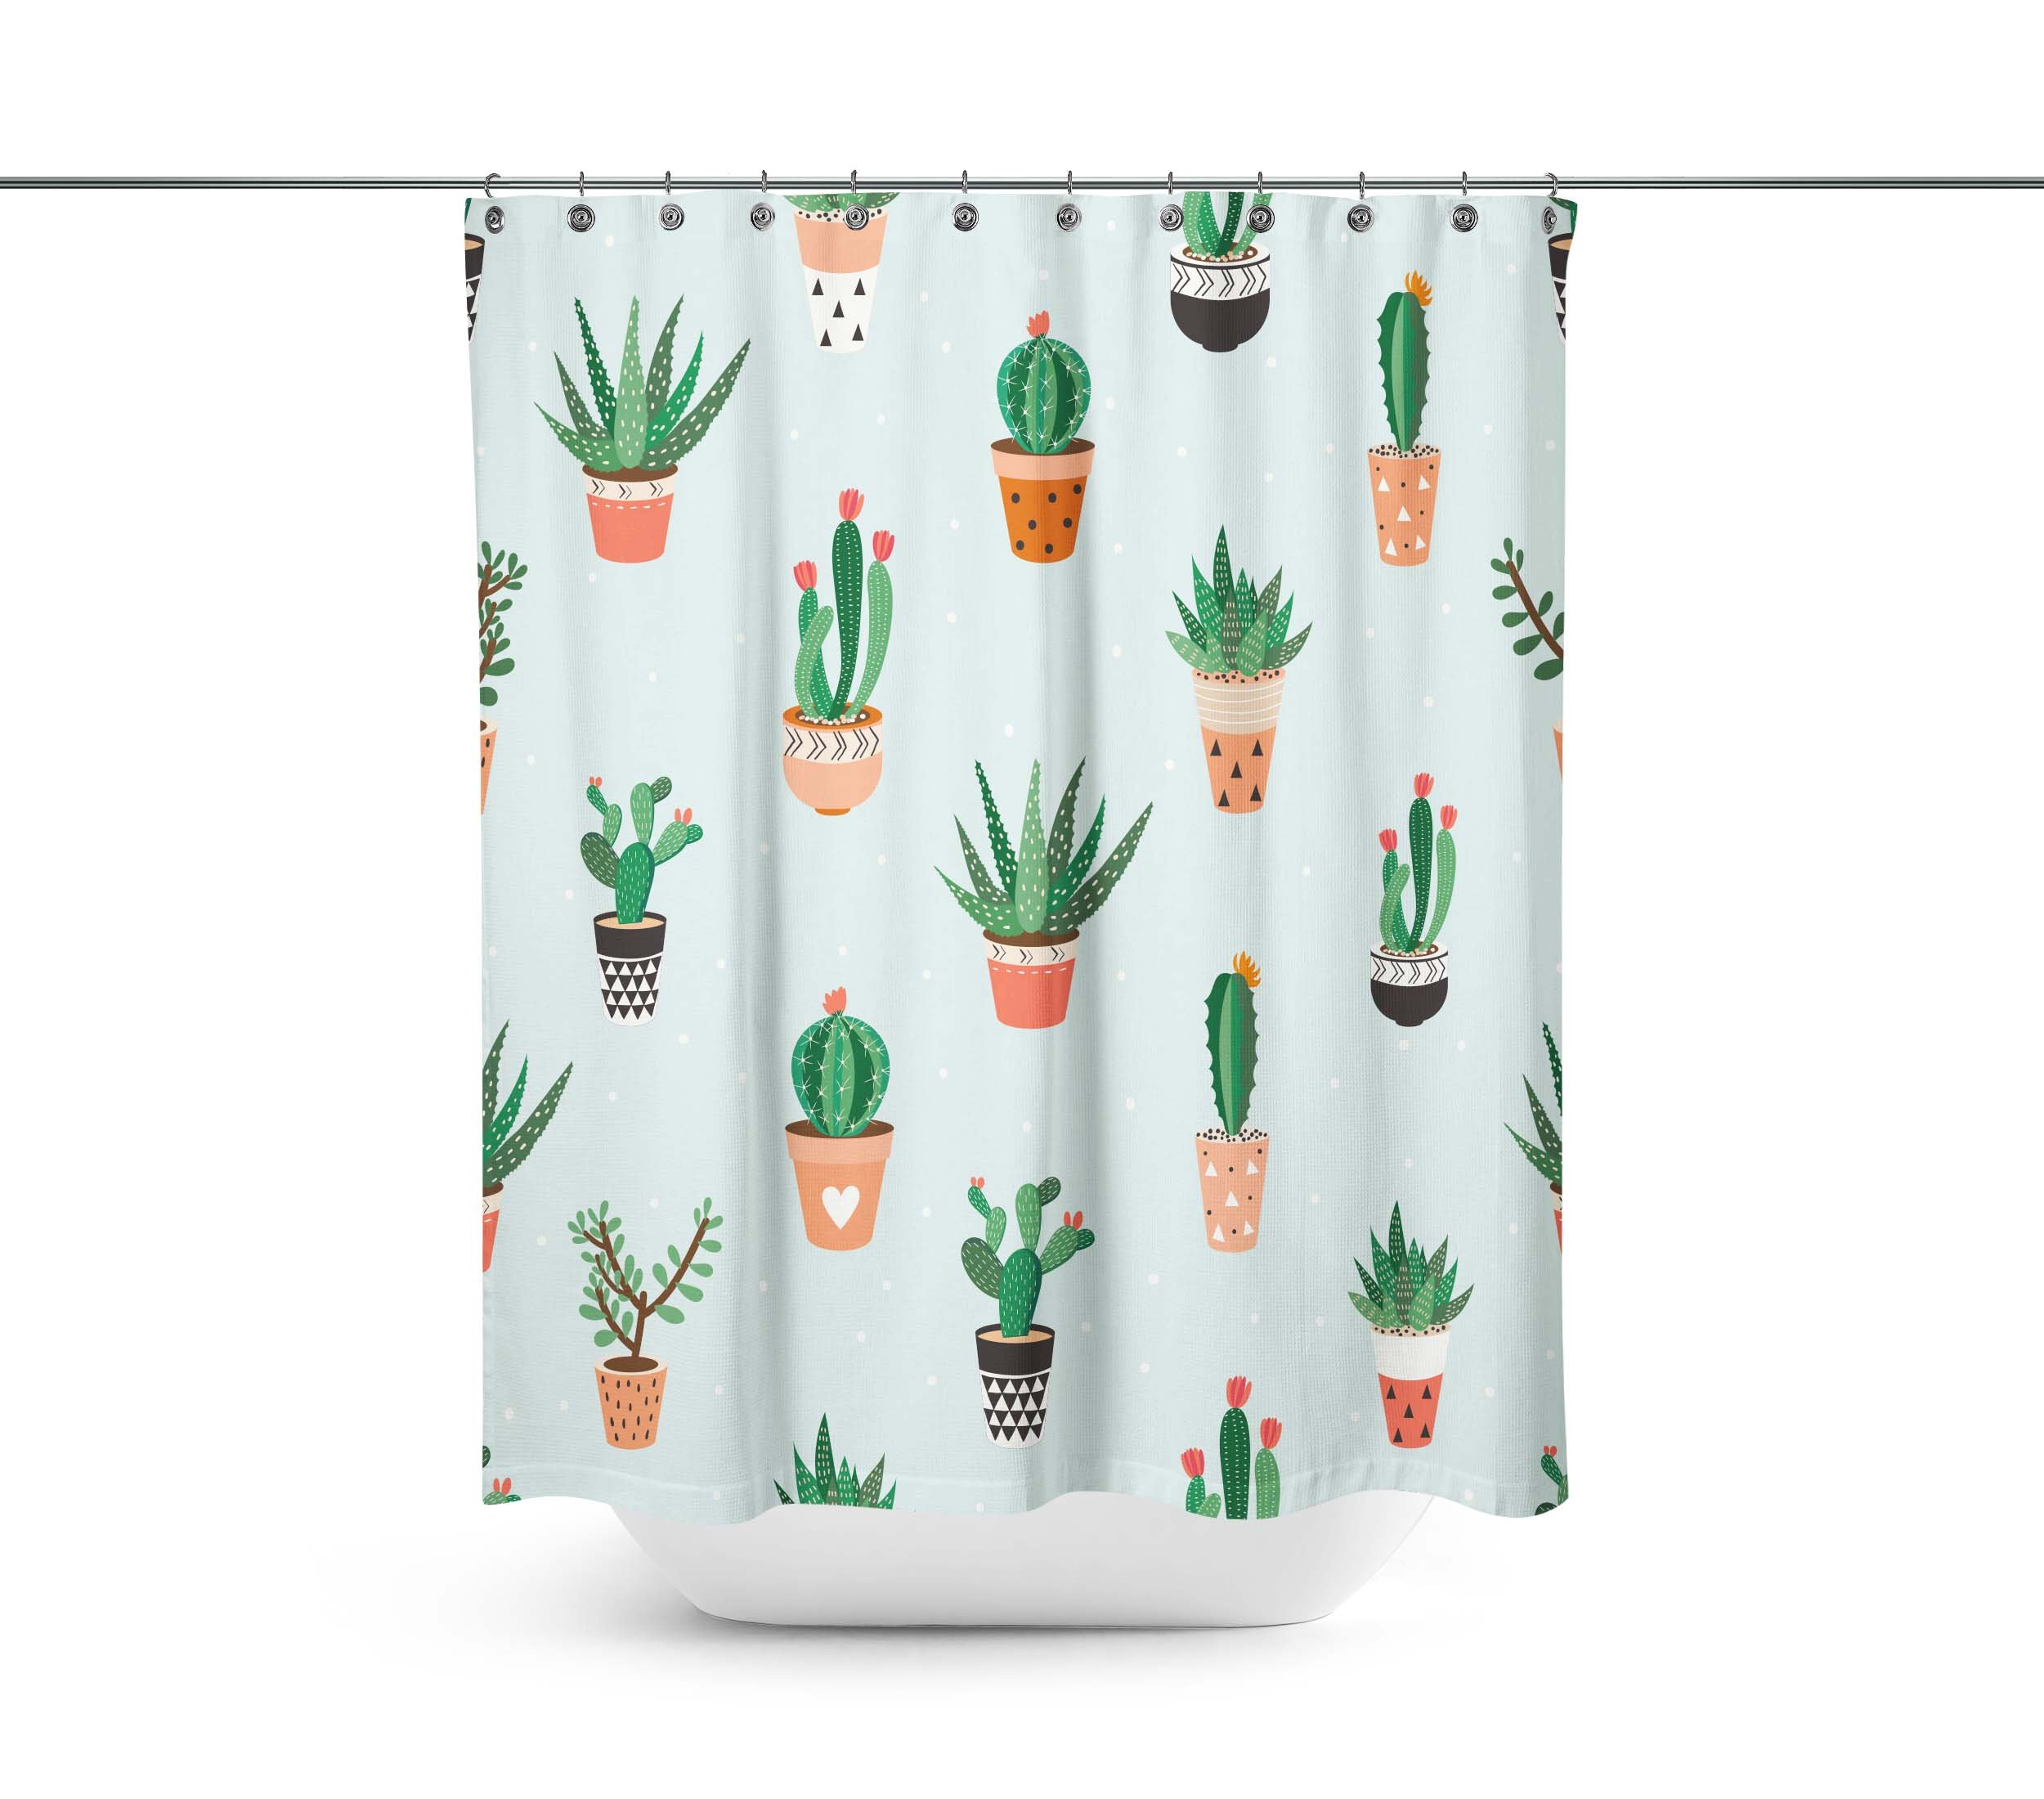 Seamless pattern with cacti and succulents Shower Curtains,Water-Repellent & Anti-bacterial Waterproof Mildew-Resistant Fabric with 12 Curtain Hooks